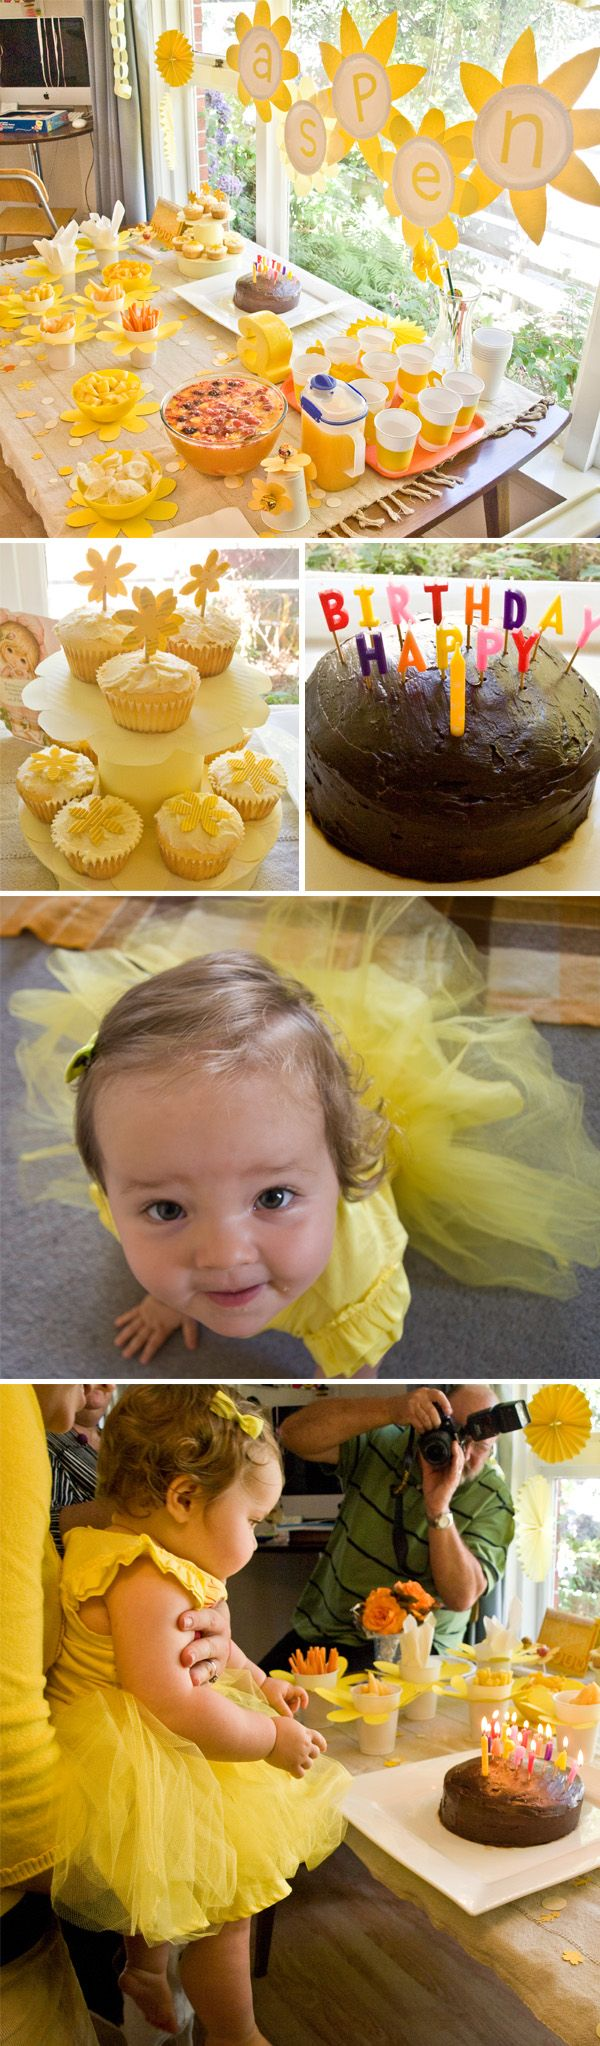 yellow birthday party.   i can see bringing in sunflowers and playing black or brown as an offset.